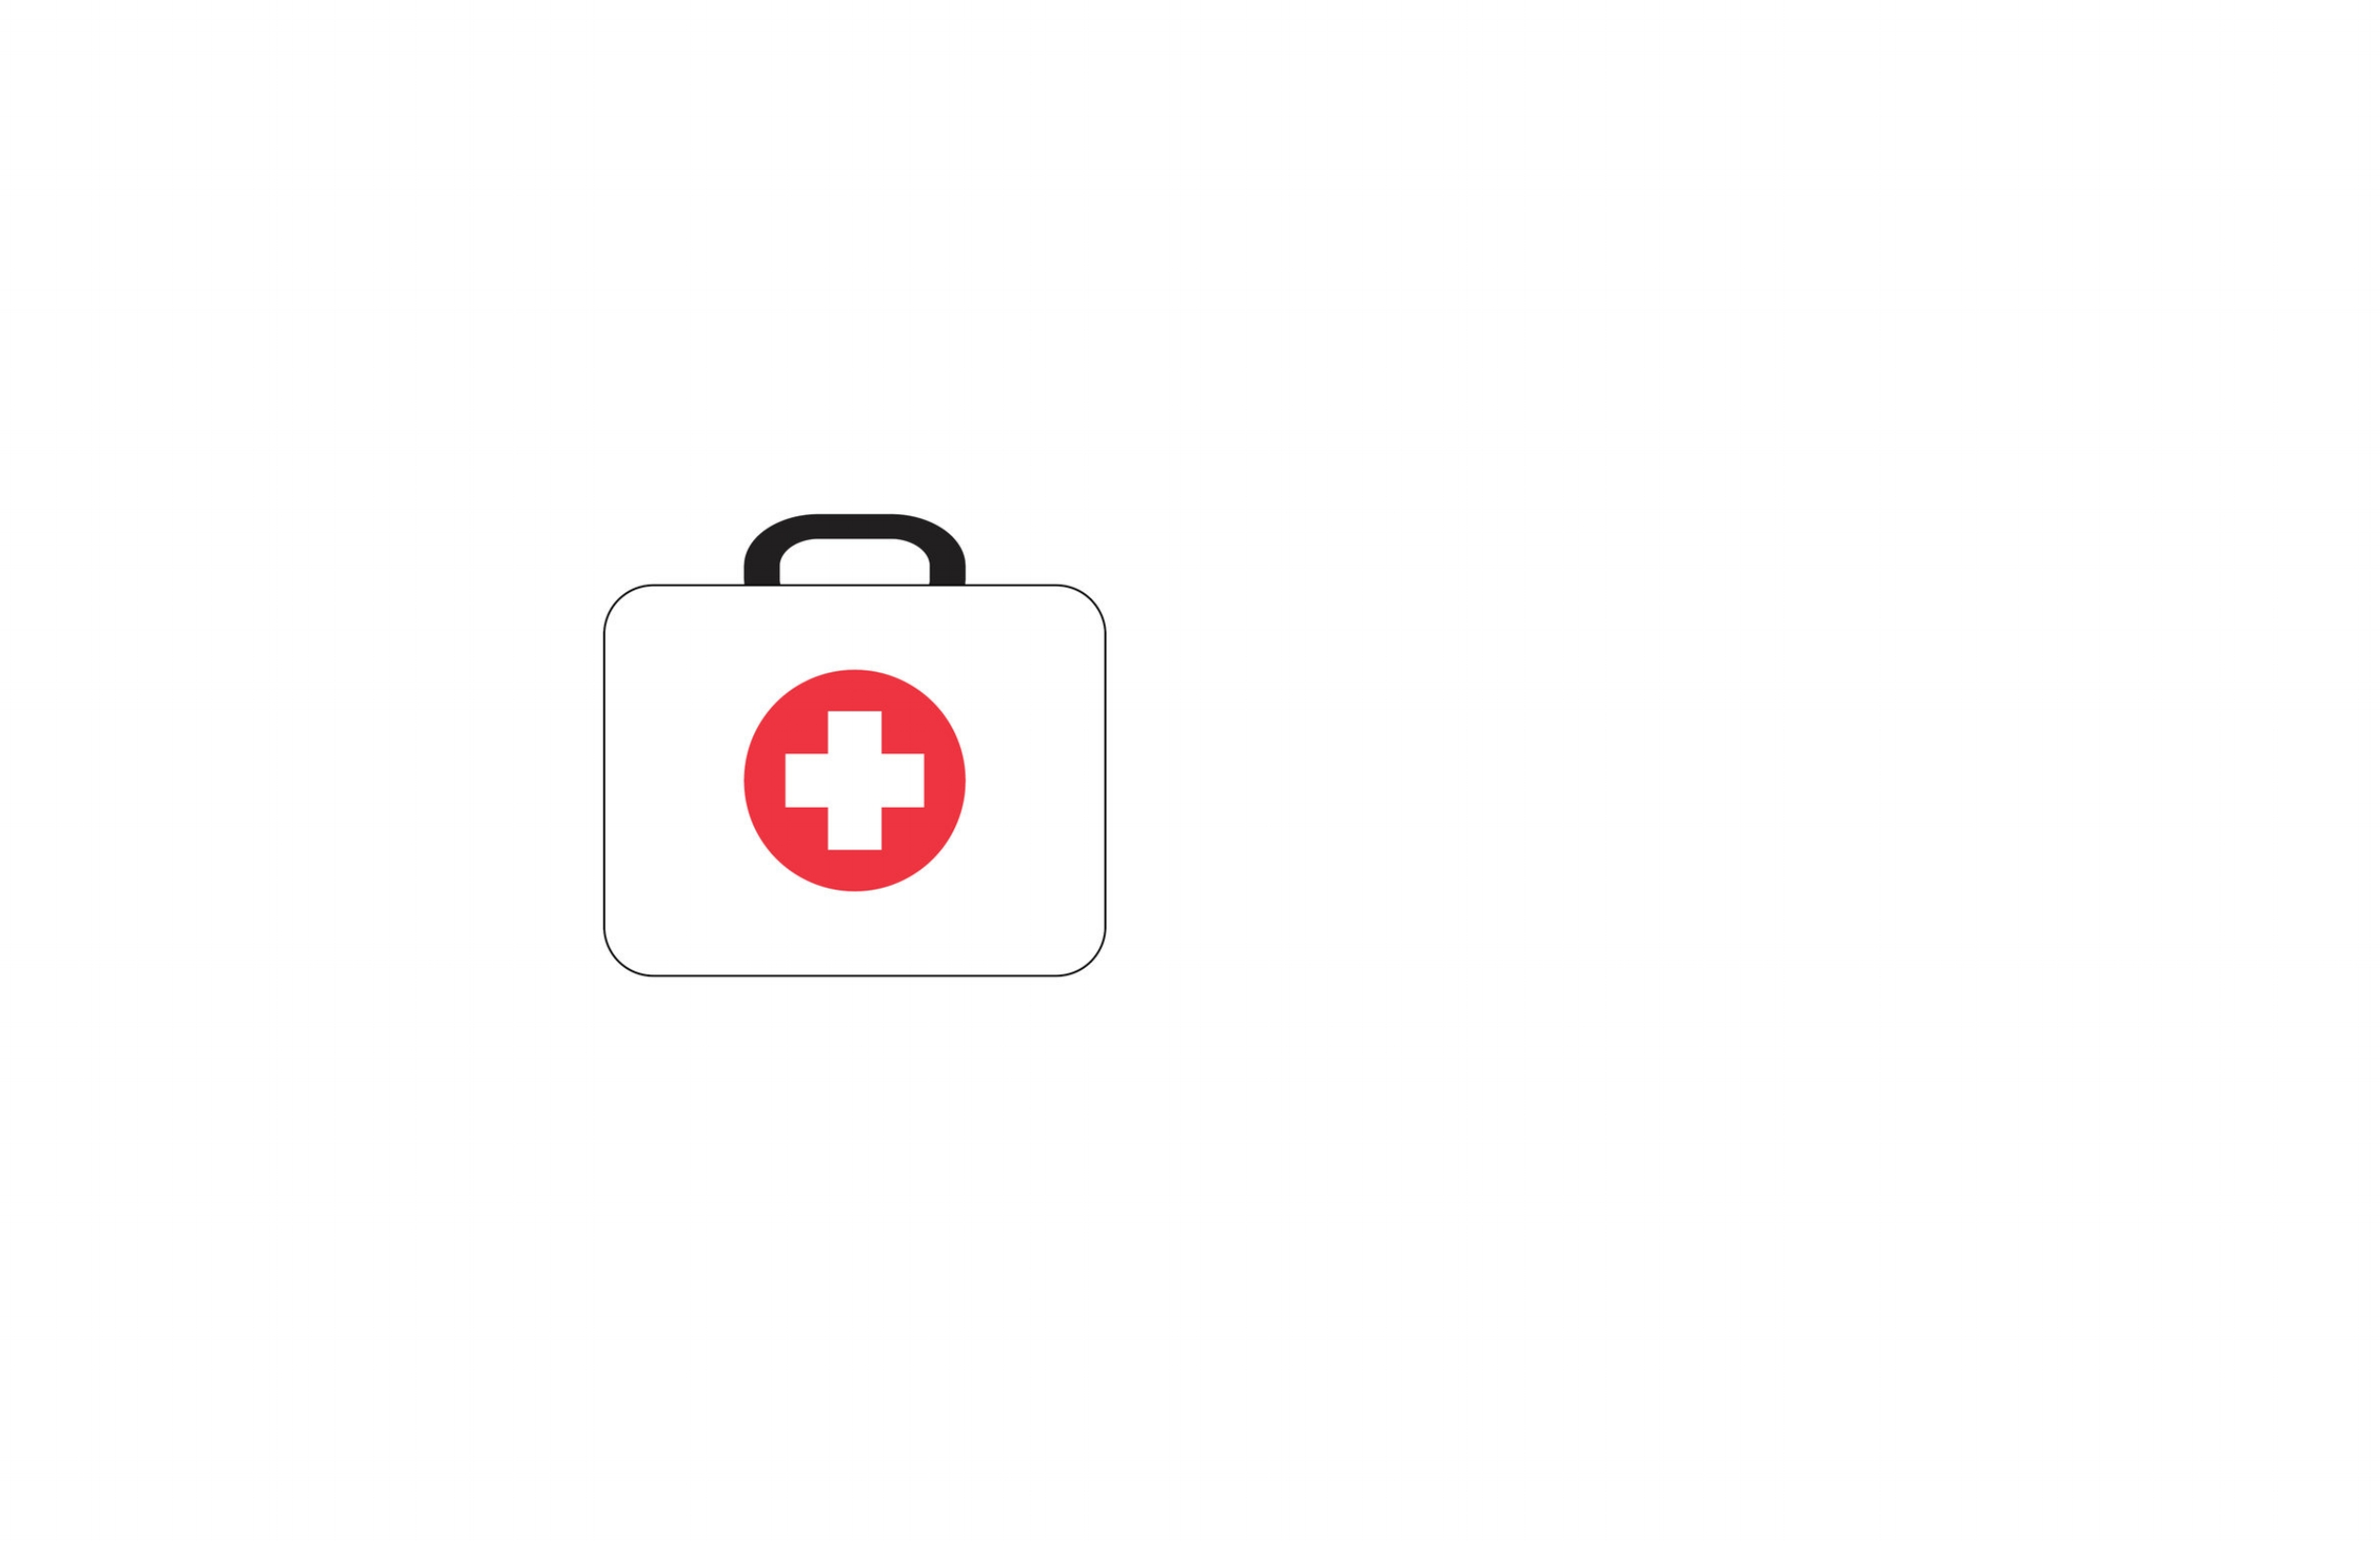 First aid kit is an essential item to have at household. However, people tend to rarely use the kit or sometimes they forget that they have it in their house. -